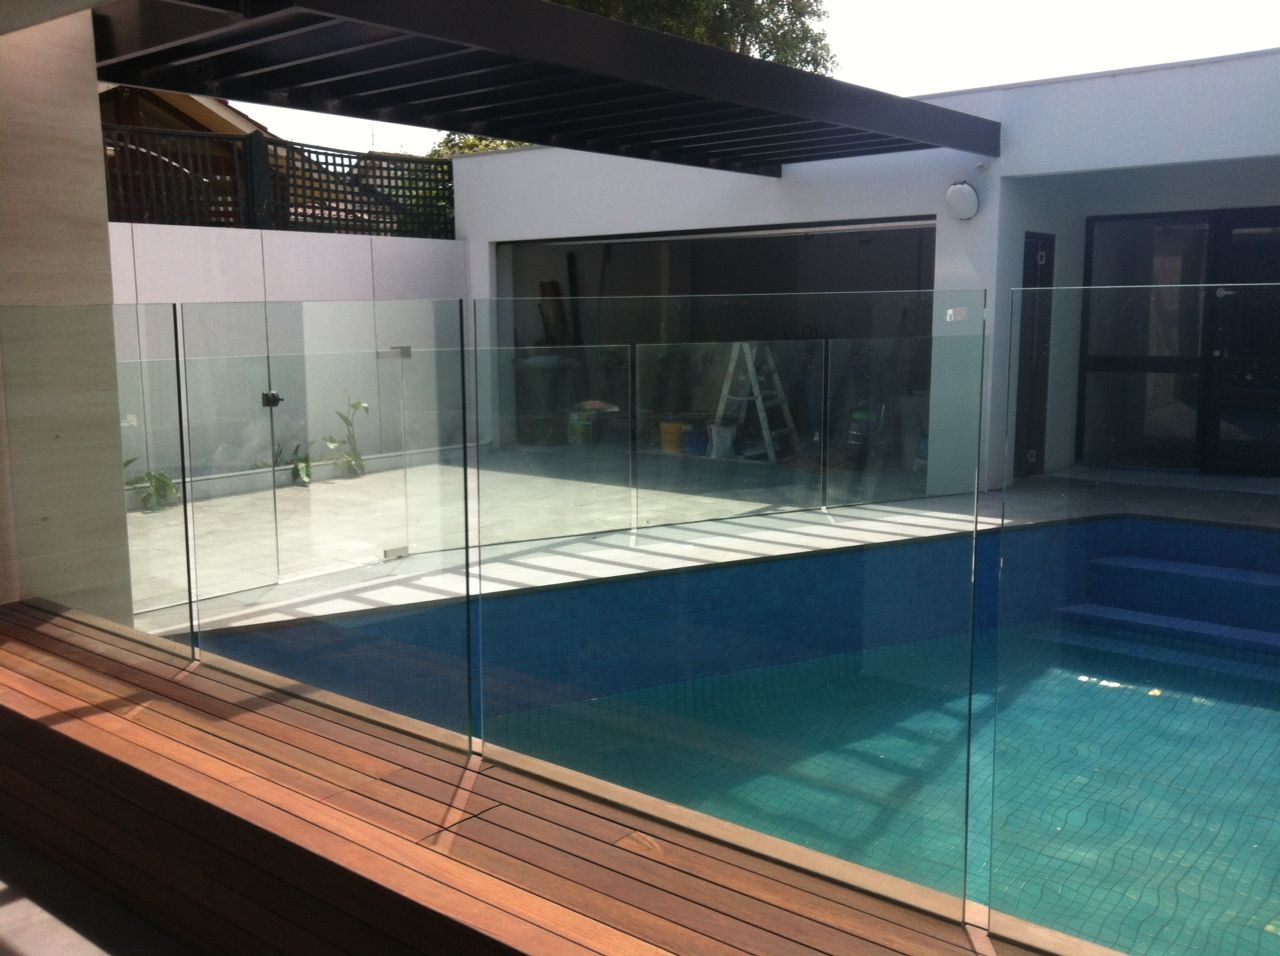 Frameless Glass Pool Fencing In Glazing Channel On Deck And Paving Glass Pool Fencing